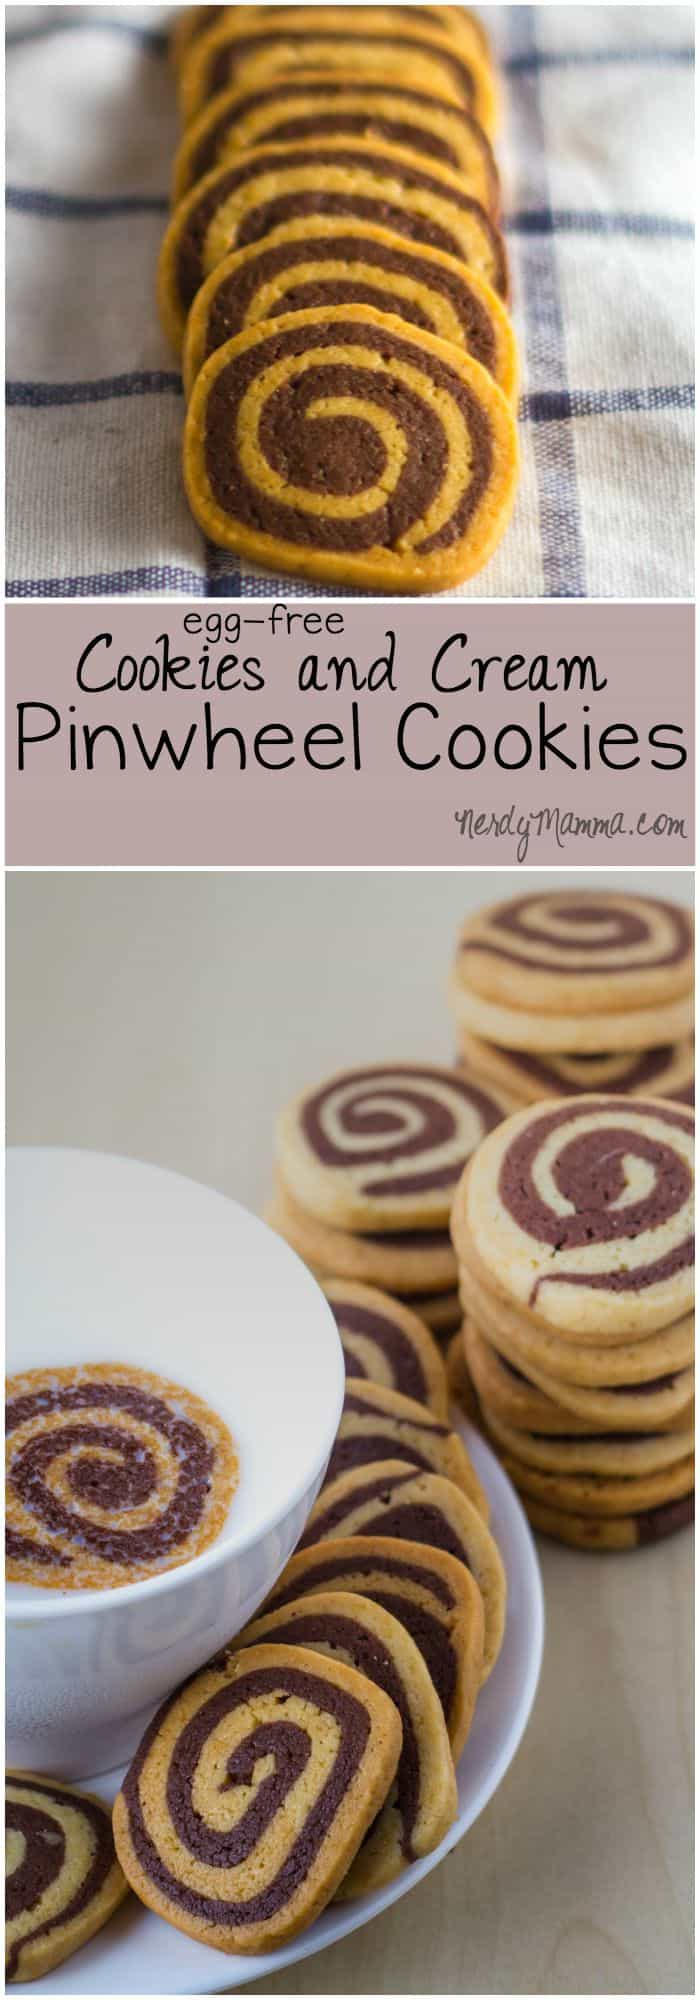 These egg-less pinwheel cookies in chocolate and vanilla are an easy way to make fantastic looking cookies in a flash.